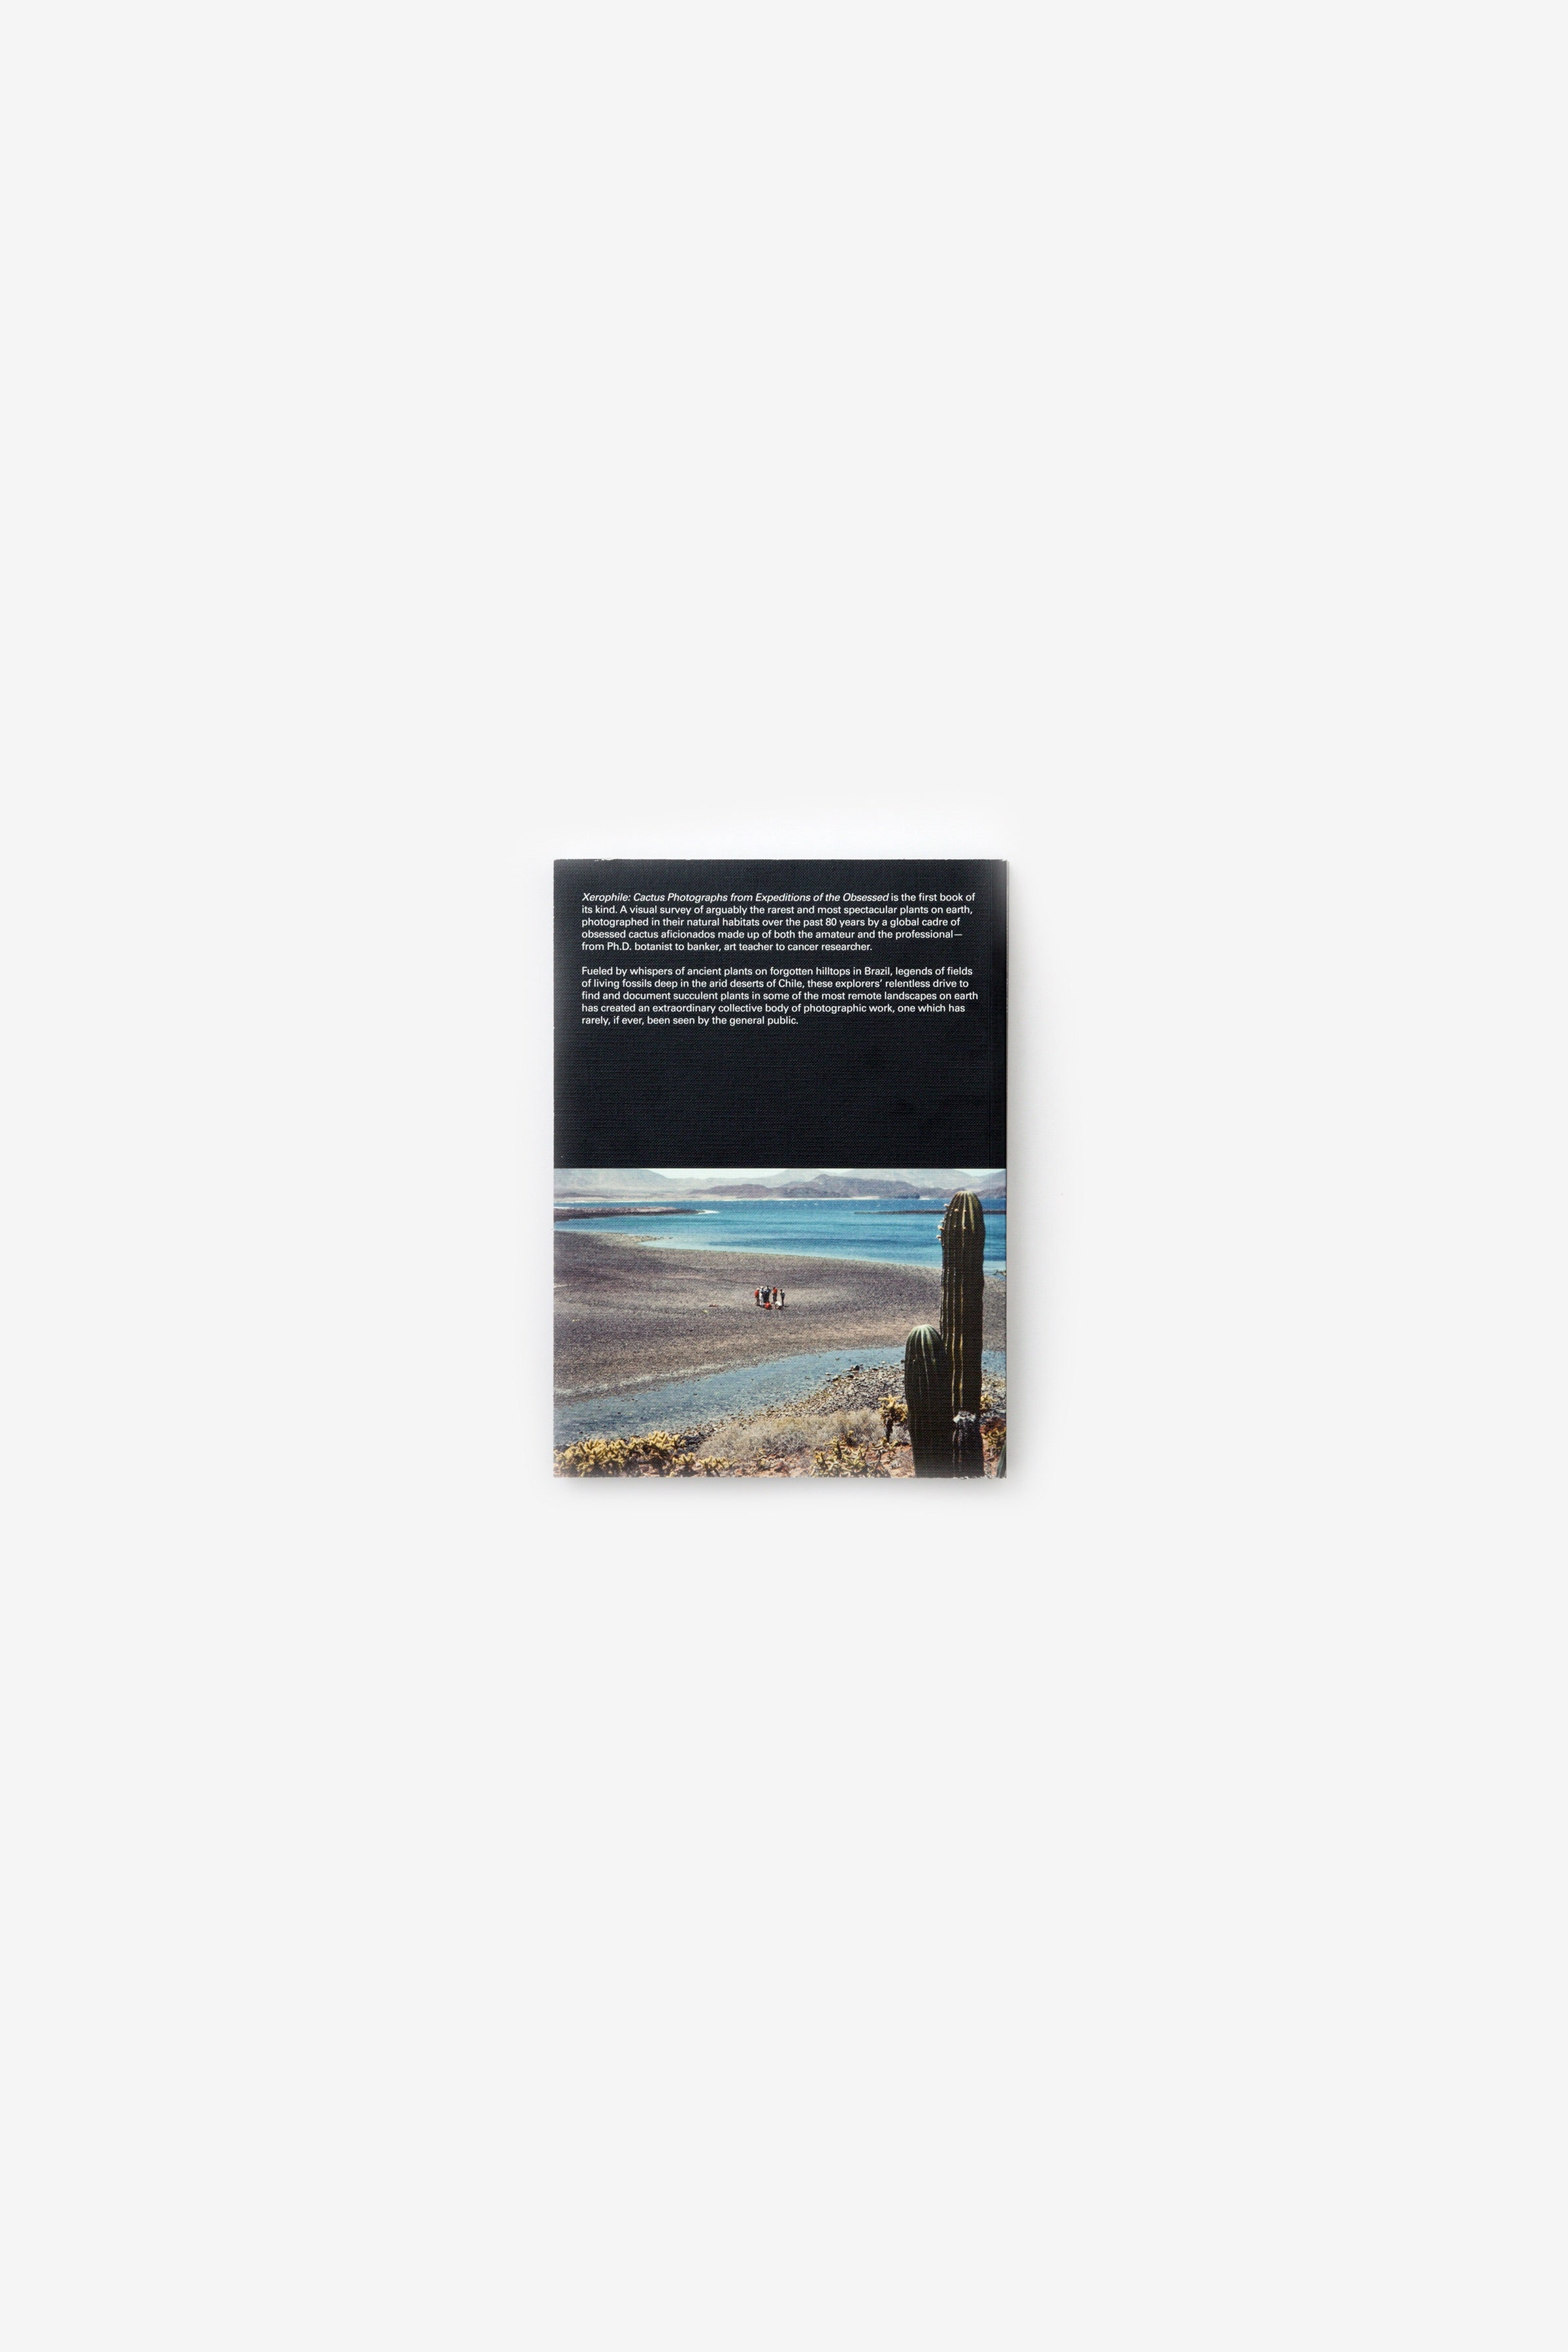 ec5a5d8778ed Xerophile  Cactus Photographs from Expeditions of the Obsessed – HOKO